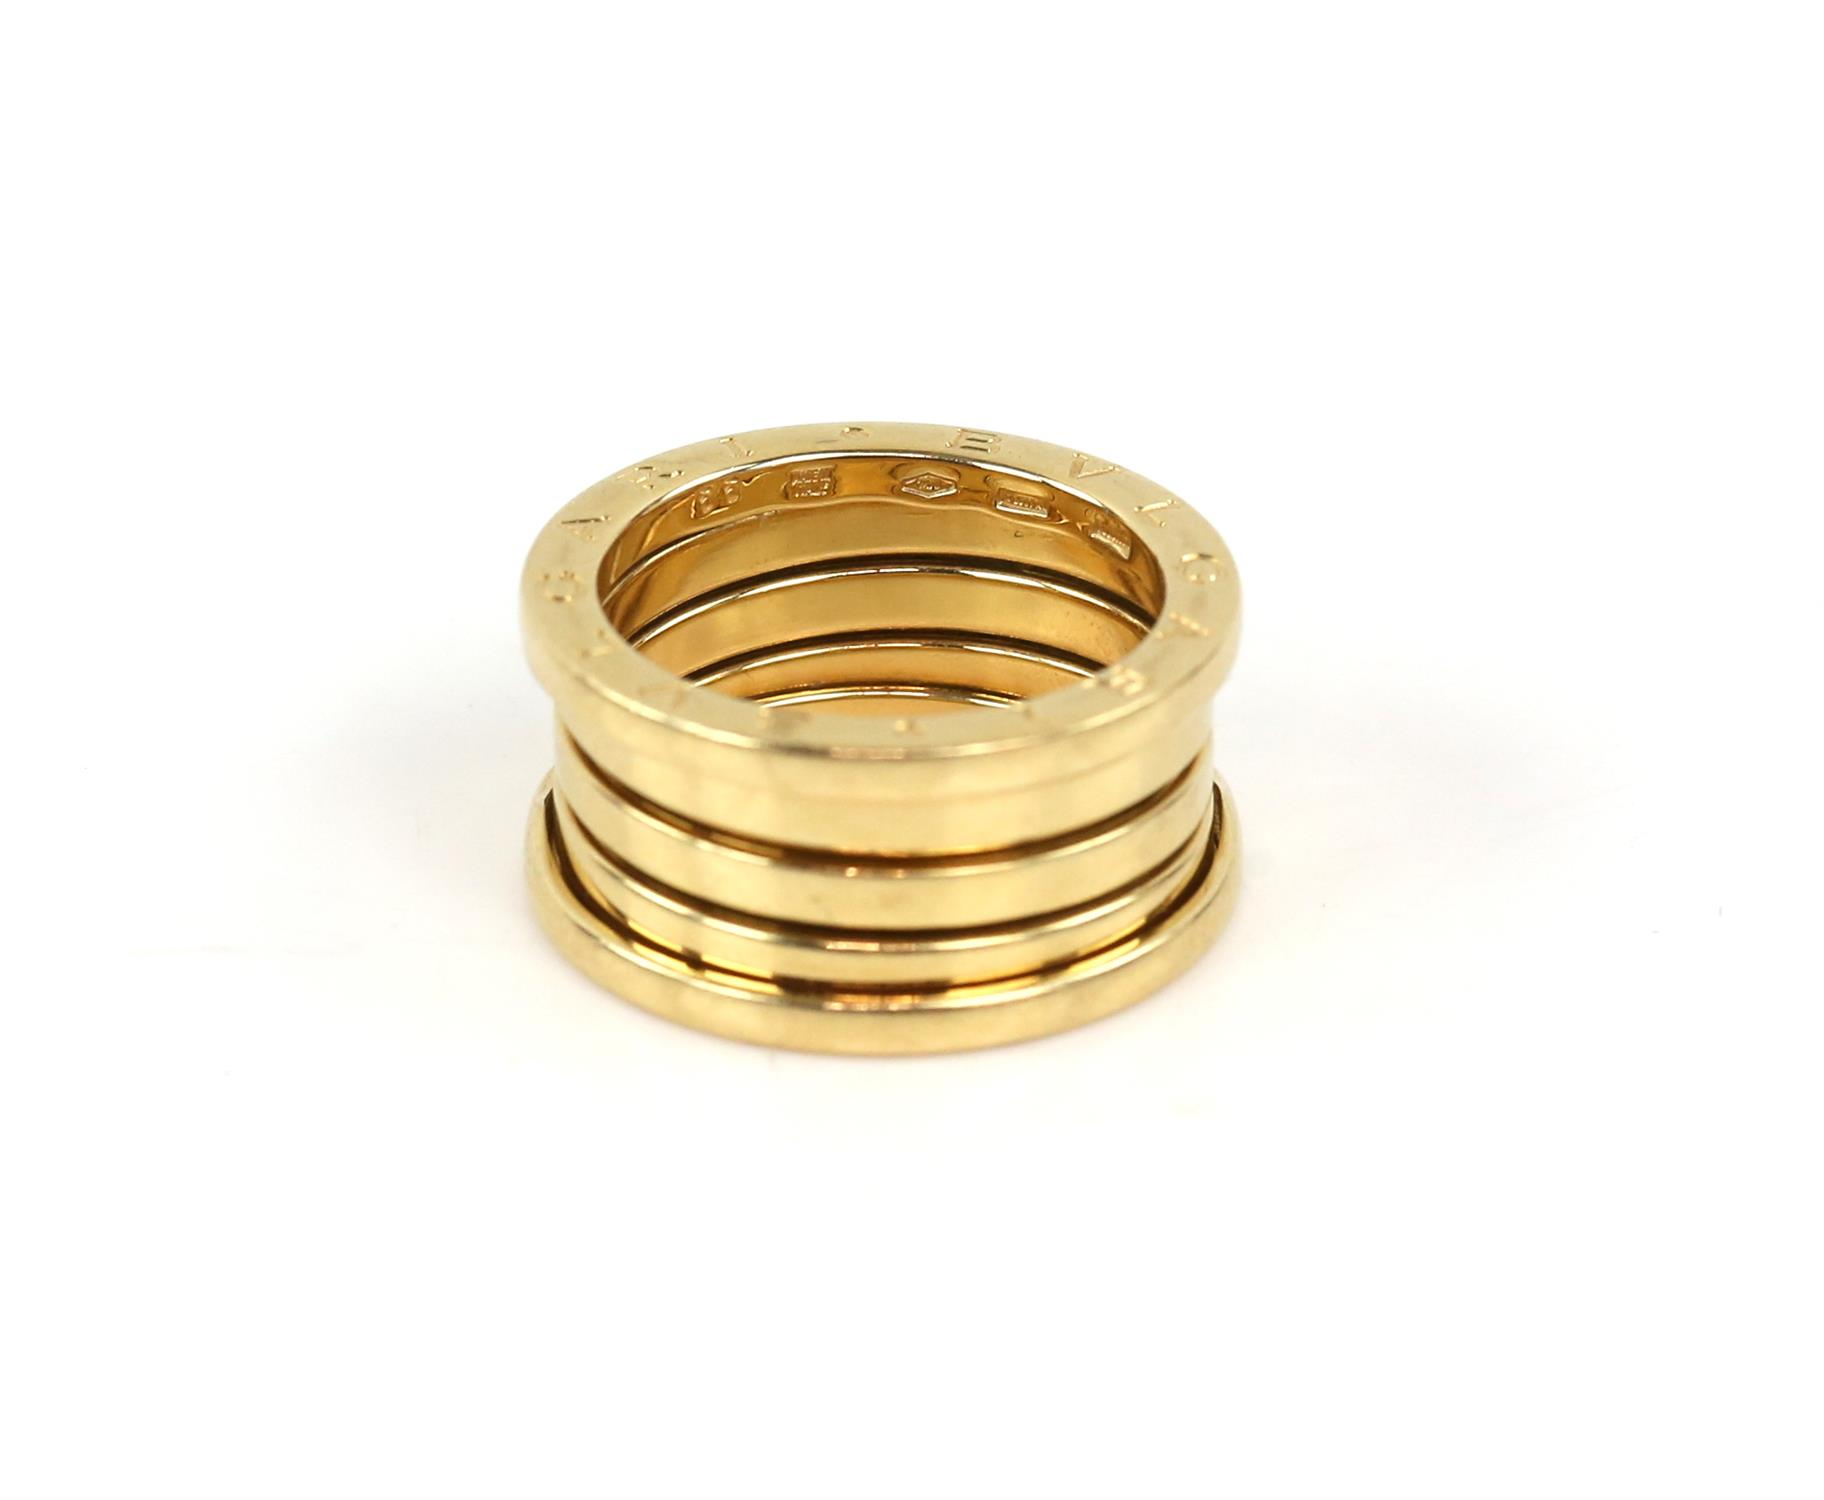 Bvlgari B.Zero1 four band ring, inside band marked Made in Italy 750, with Bvlgari makers mark, - Image 4 of 6